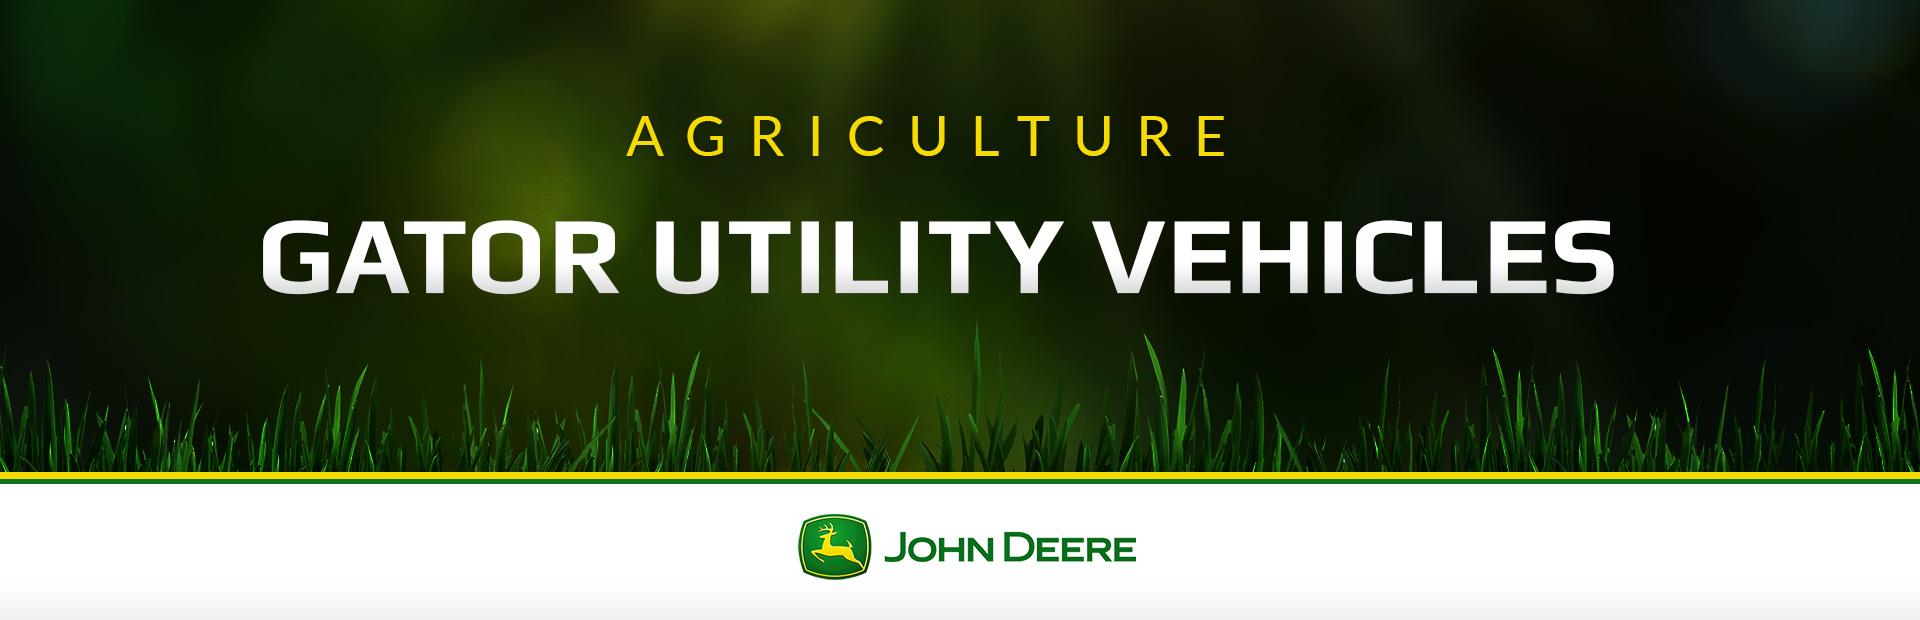 John Deere: Agriculture Gator Utility Vehicles